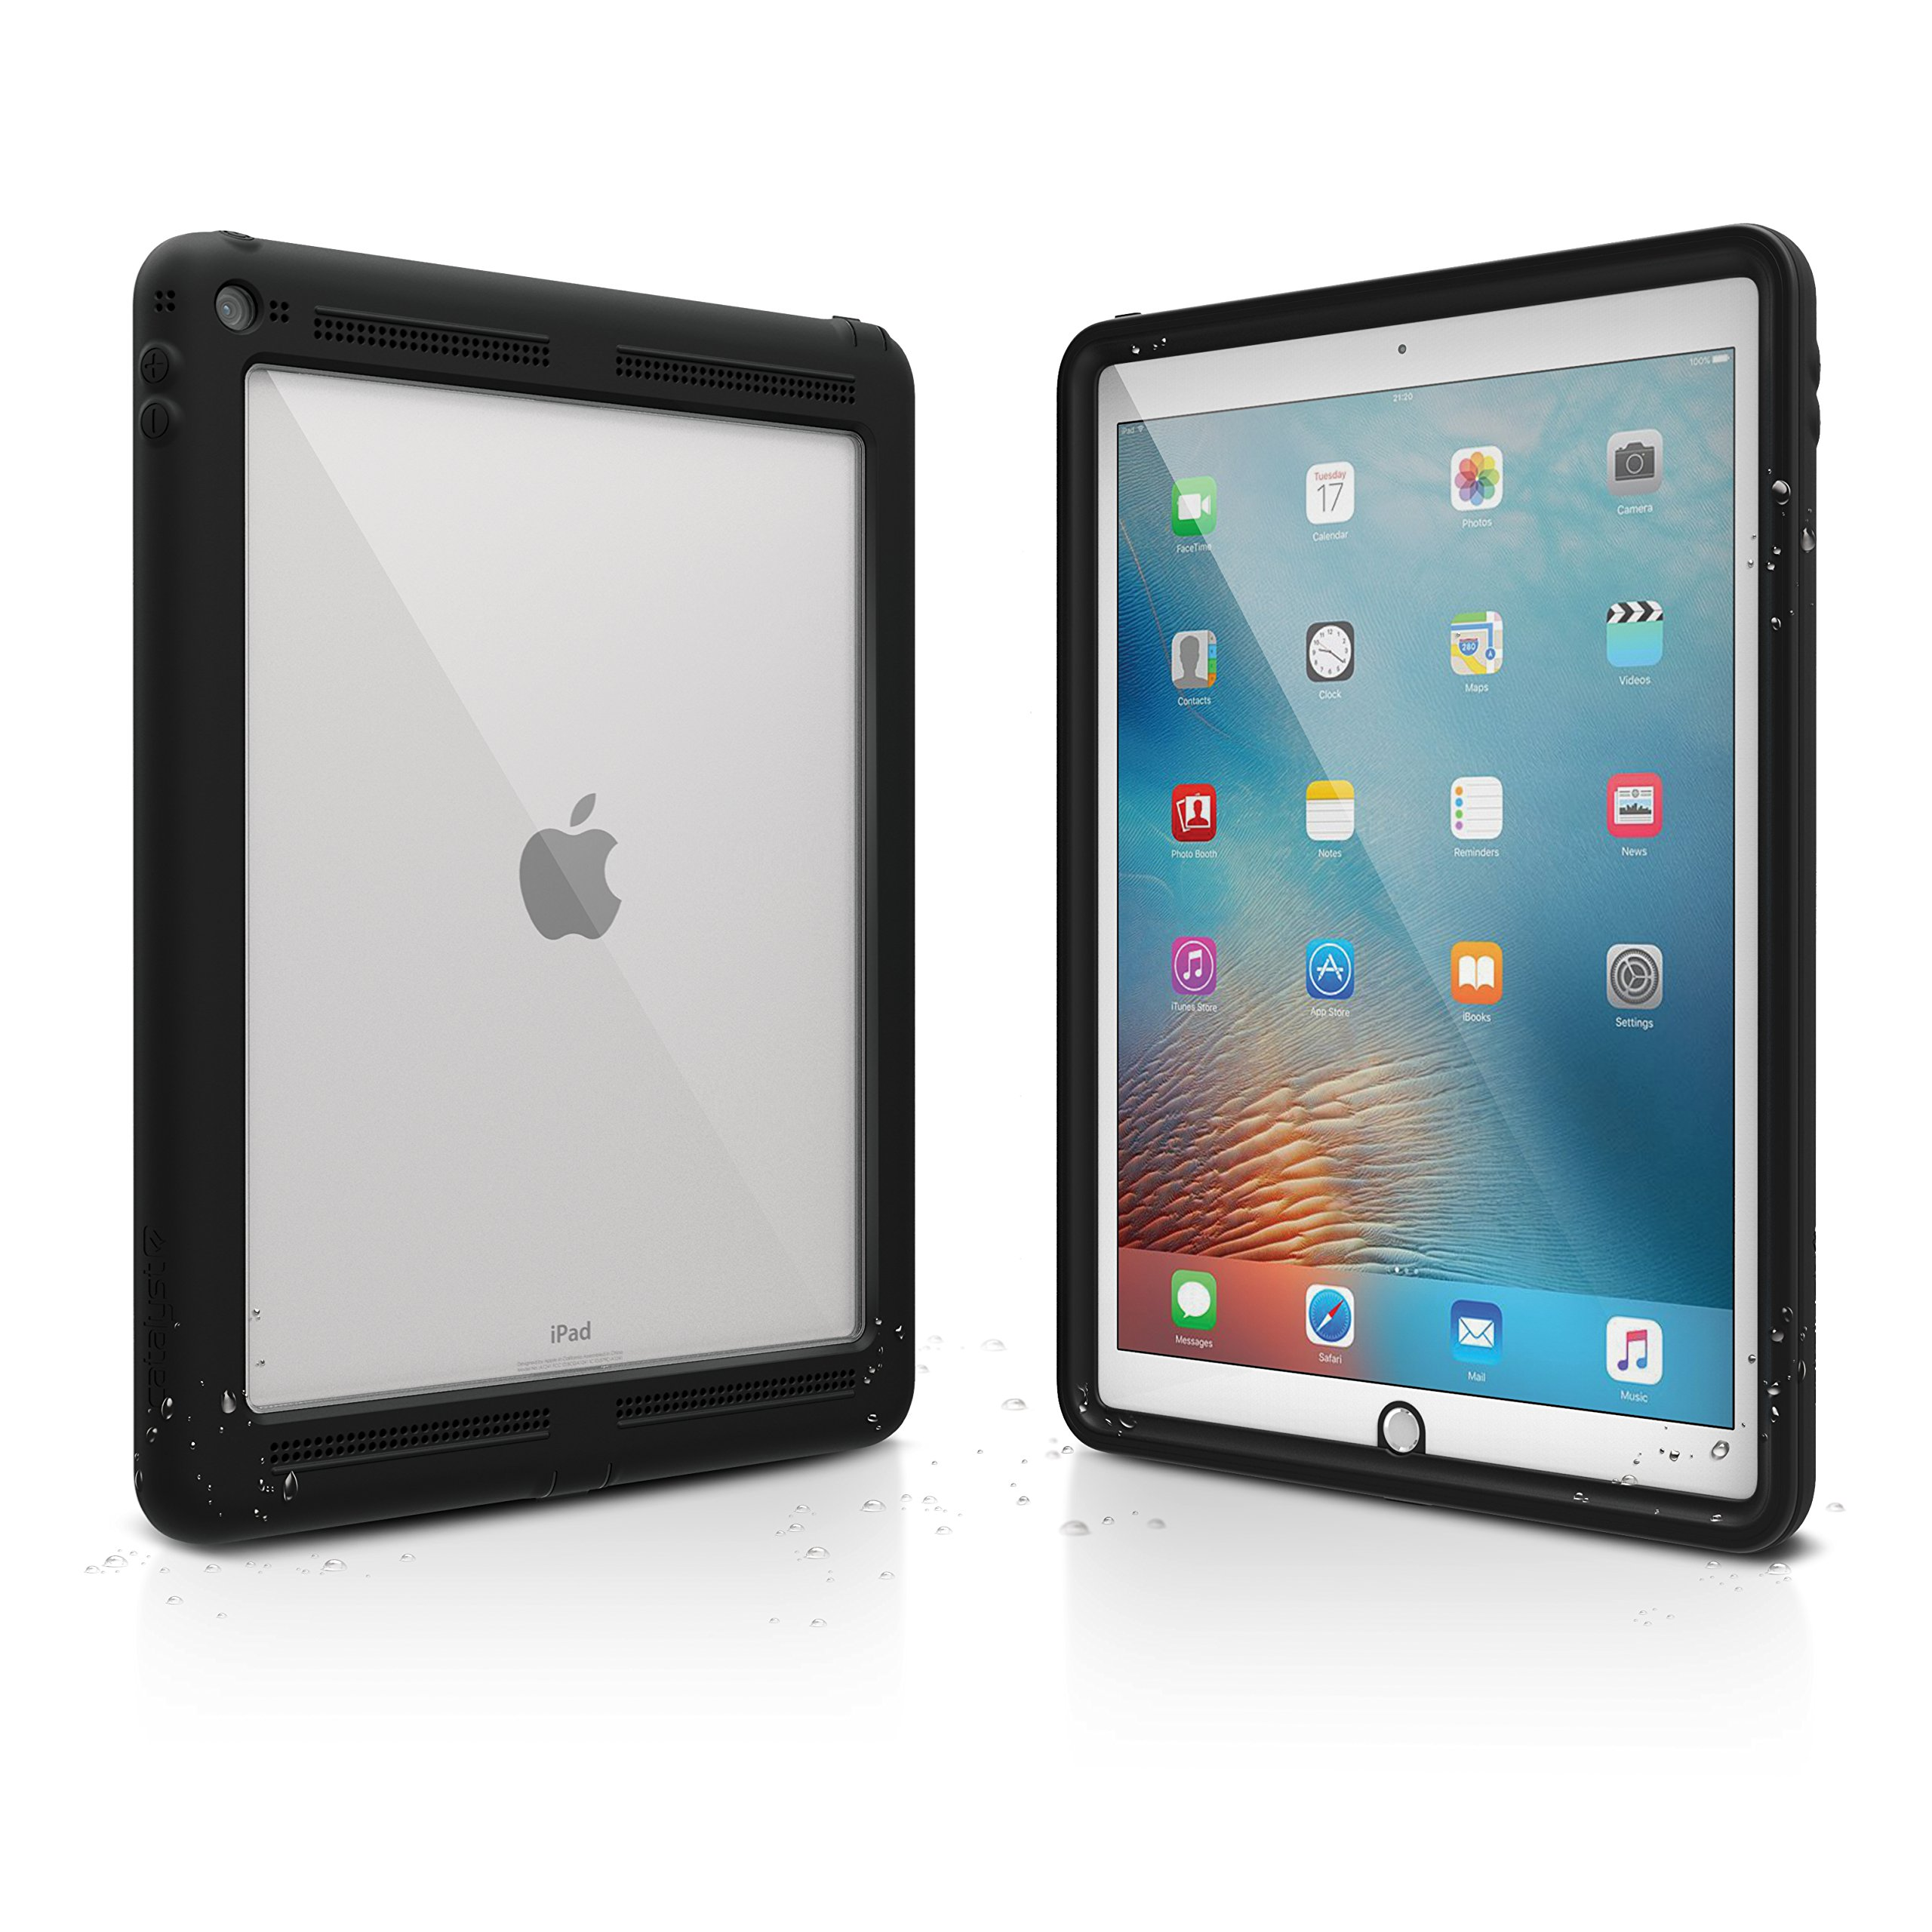 Catalyst Premium Quality Waterproof Shockproof Case for Apple 12.9'' iPad Pro (2015) - Stealth Black with High Touch Sensitivity ID and Multi Position Stand